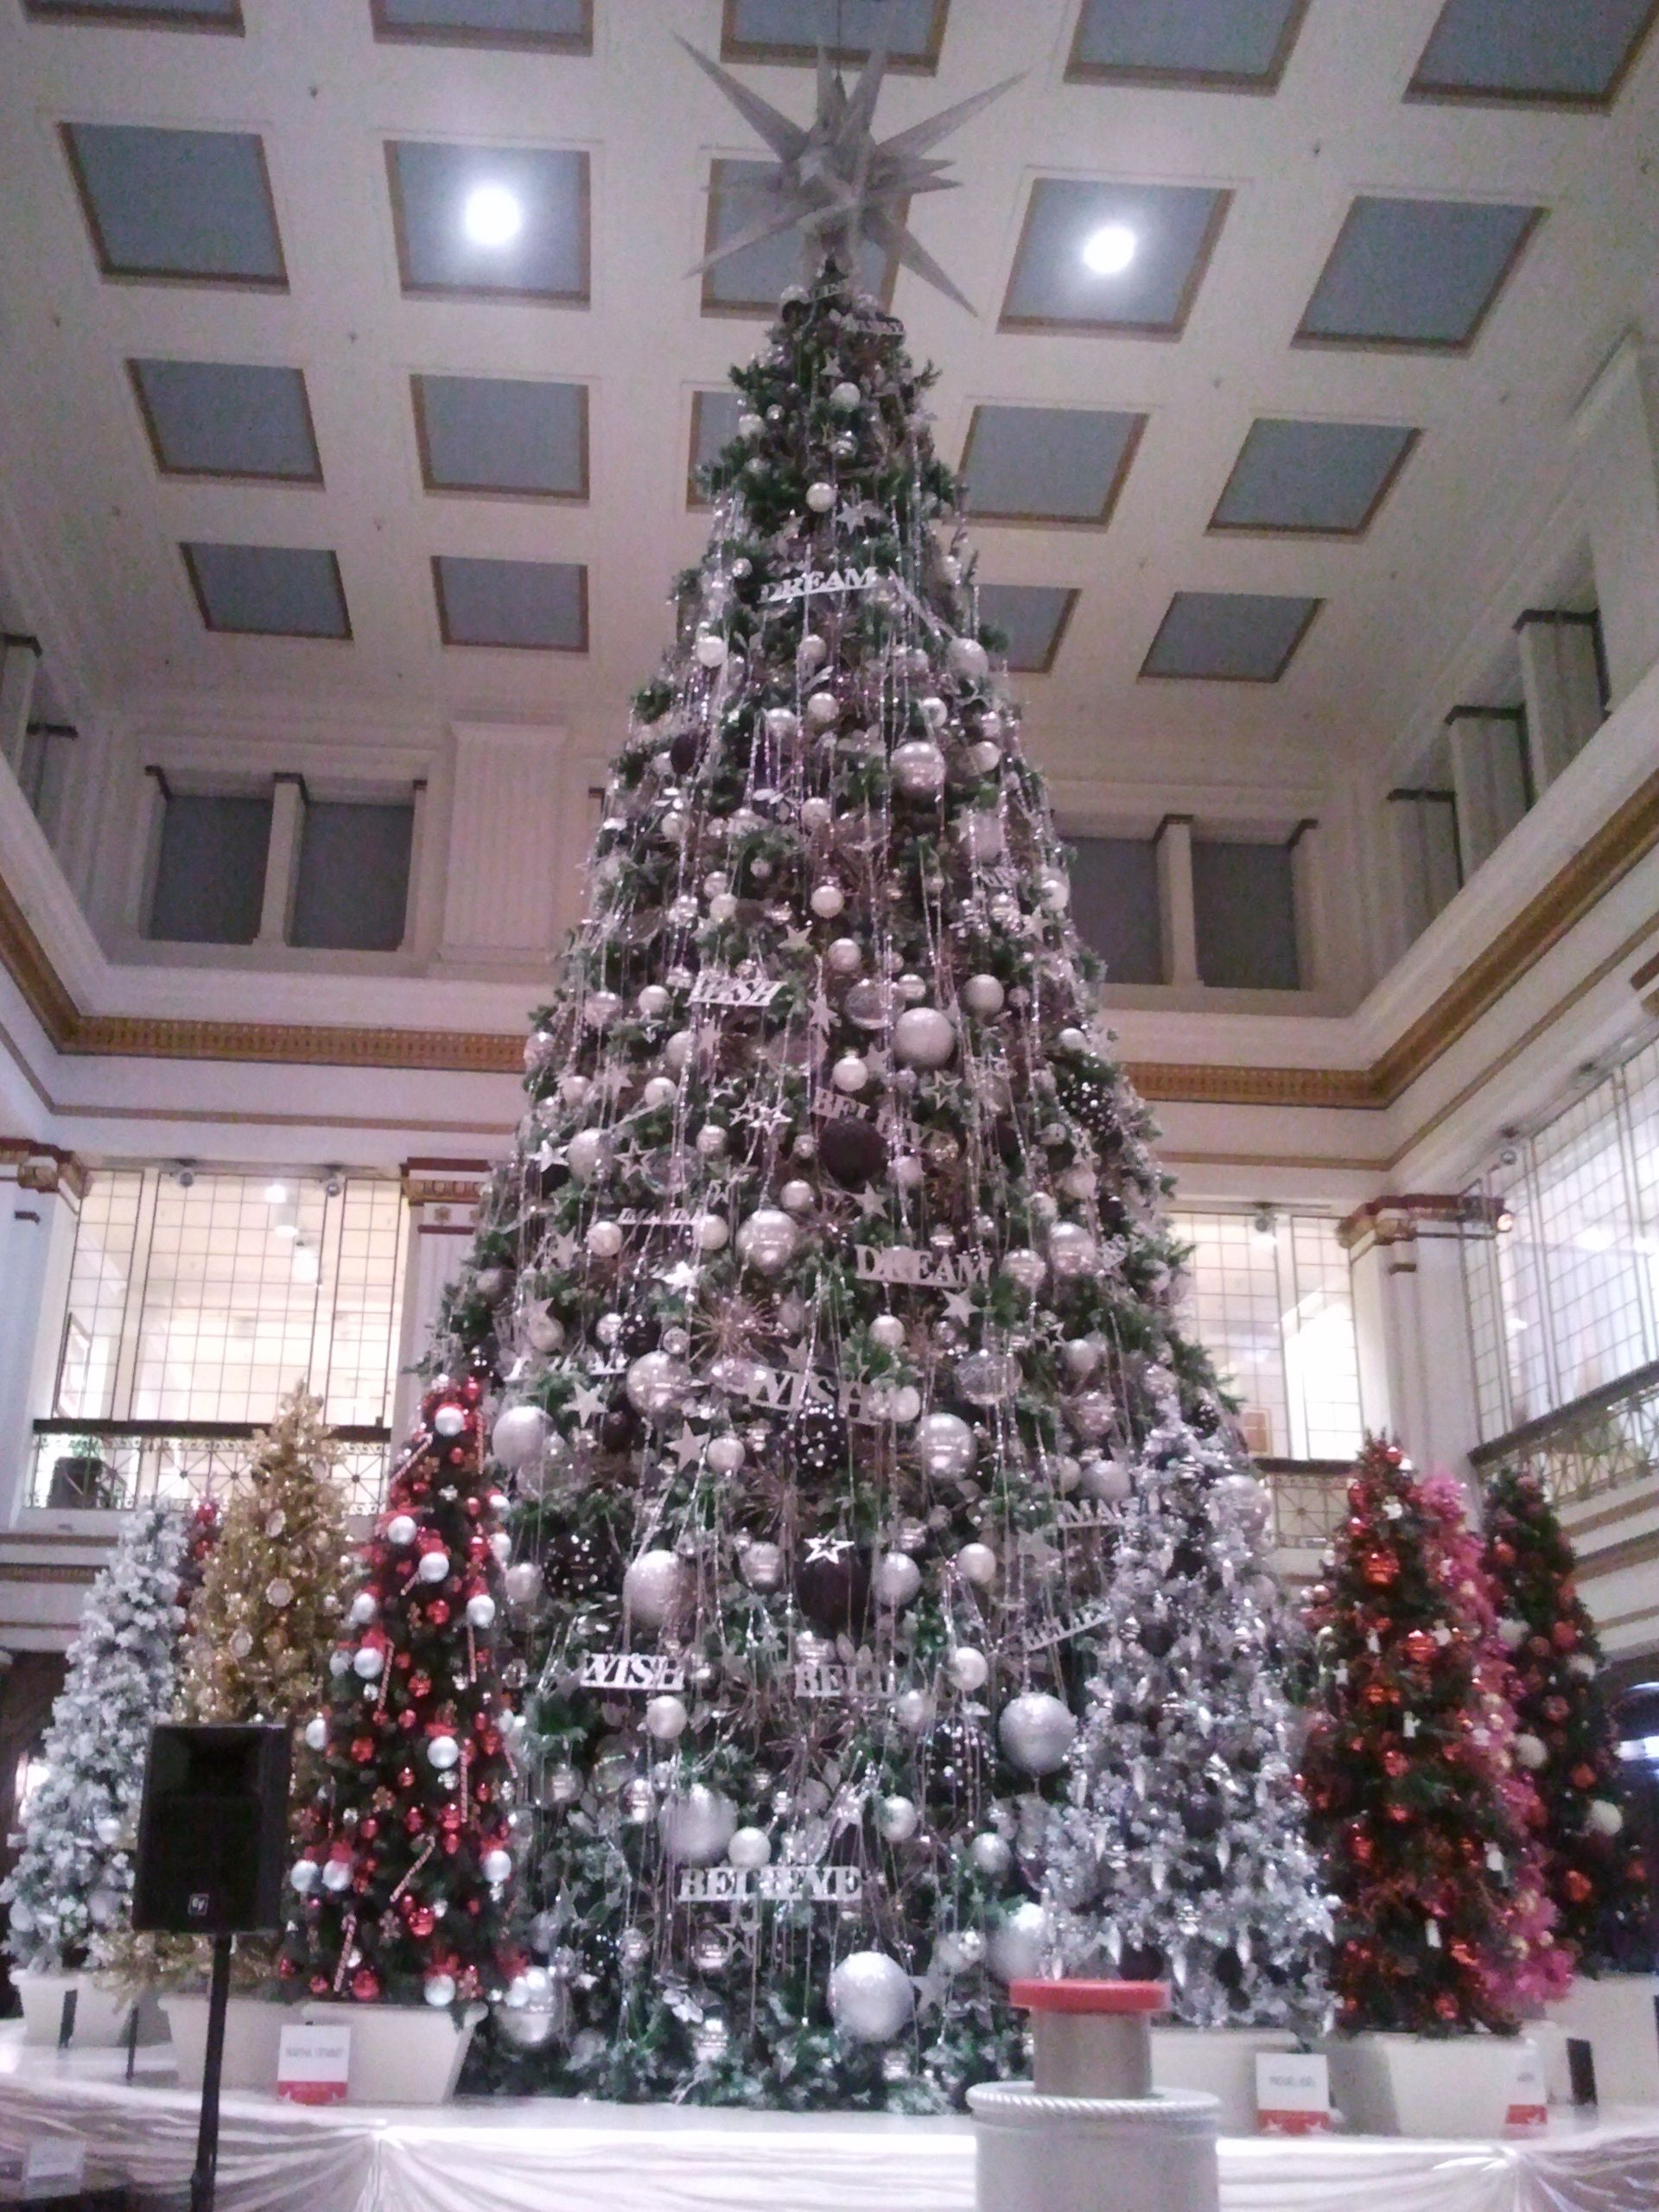 Excursion Travels Christmas Tree Christmas Holidays And Events